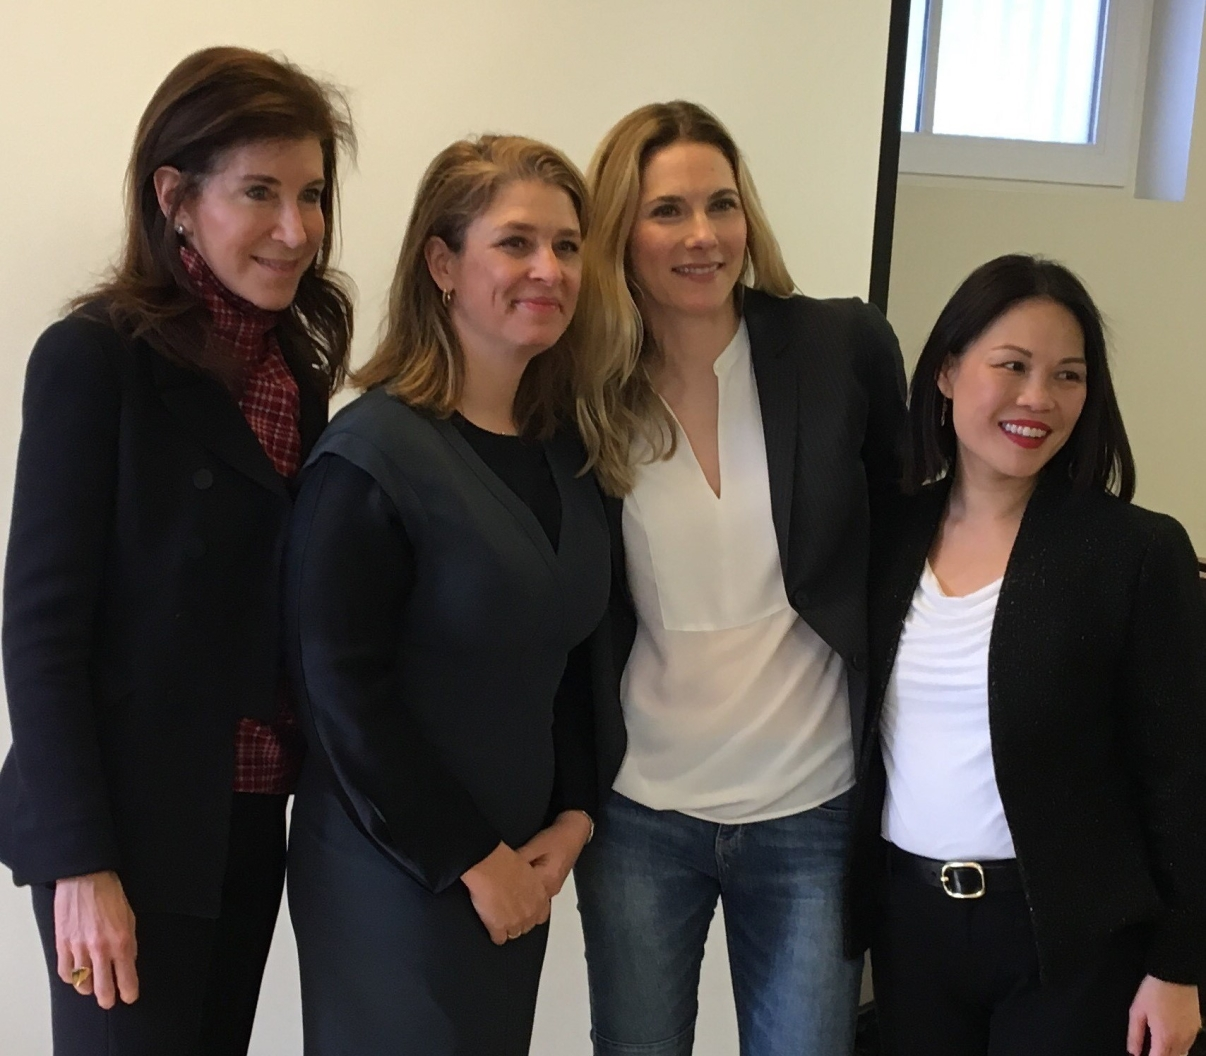 (From left) President and CEO of Brooklyn Public Library Linda Johnson, Deputy Mayor Alicia Glen, Head of External Affairs for Google NYC Carley Garcia, and MotherCoders Founder Tina Lee